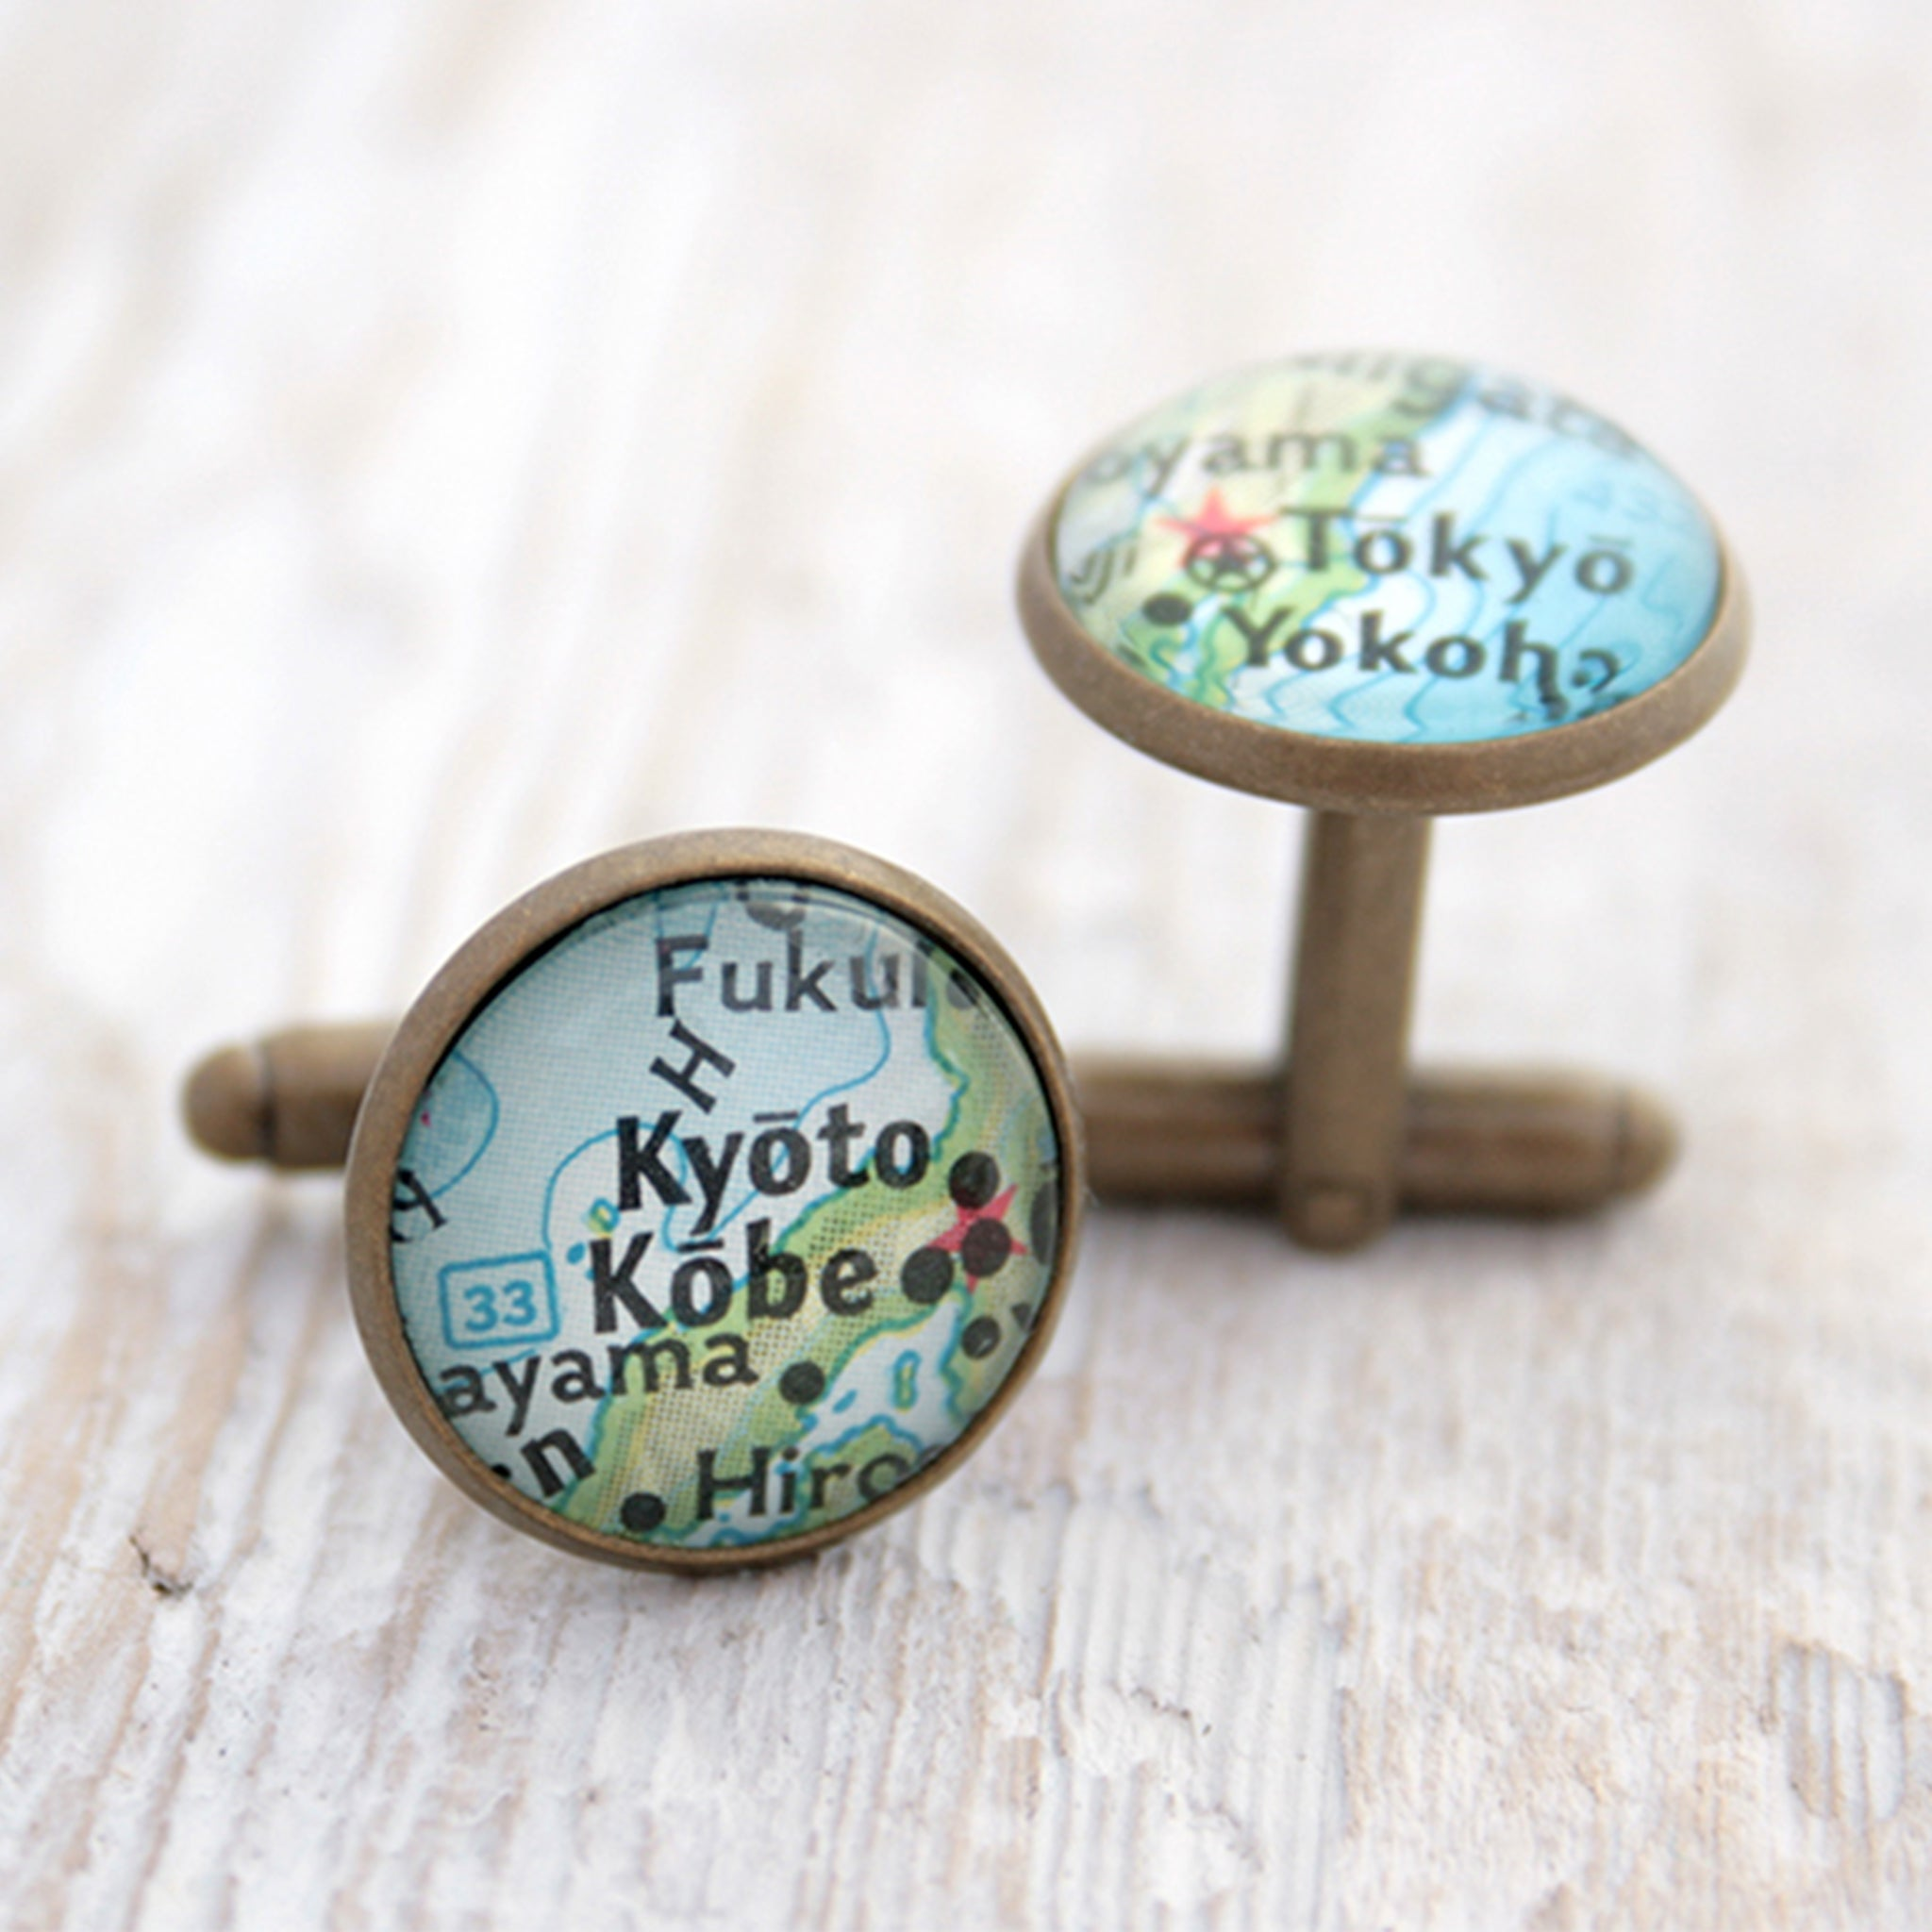 Personalised map cufflinks in antique bronze color featuring maps of Kyoto and Tokyo